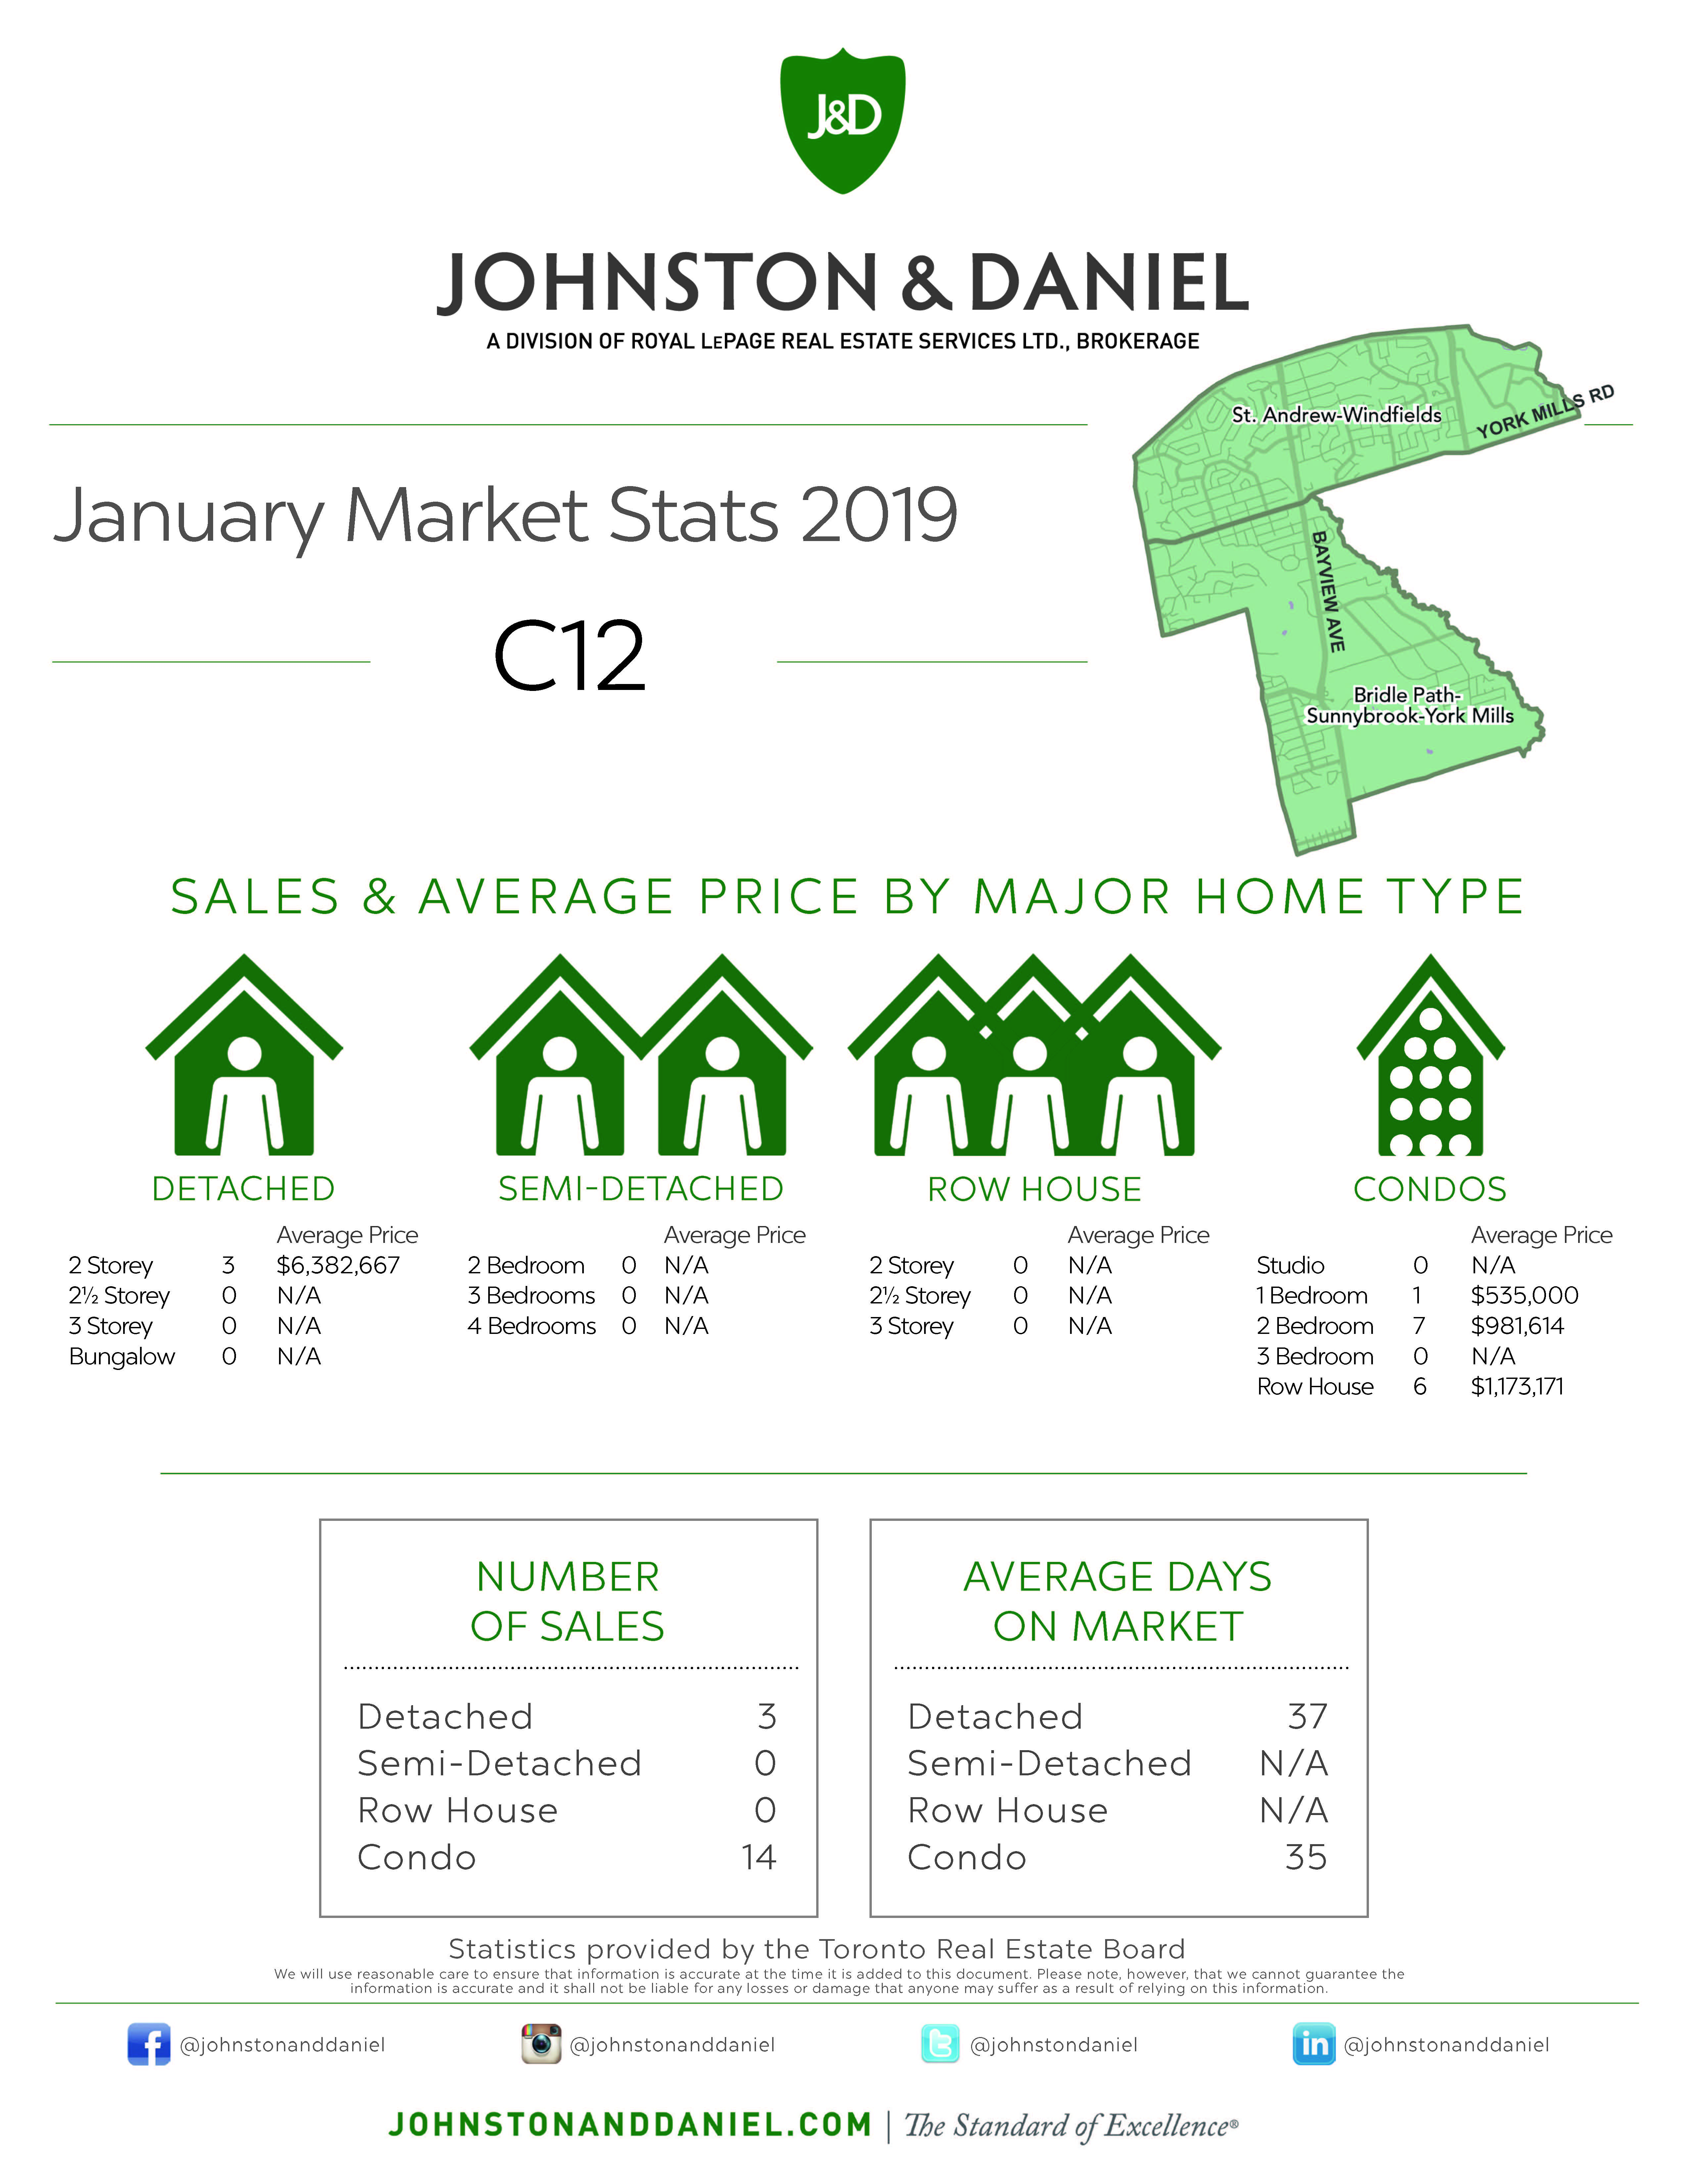 Toronto Real Estate Sales Statistics January 2019 for Area C12